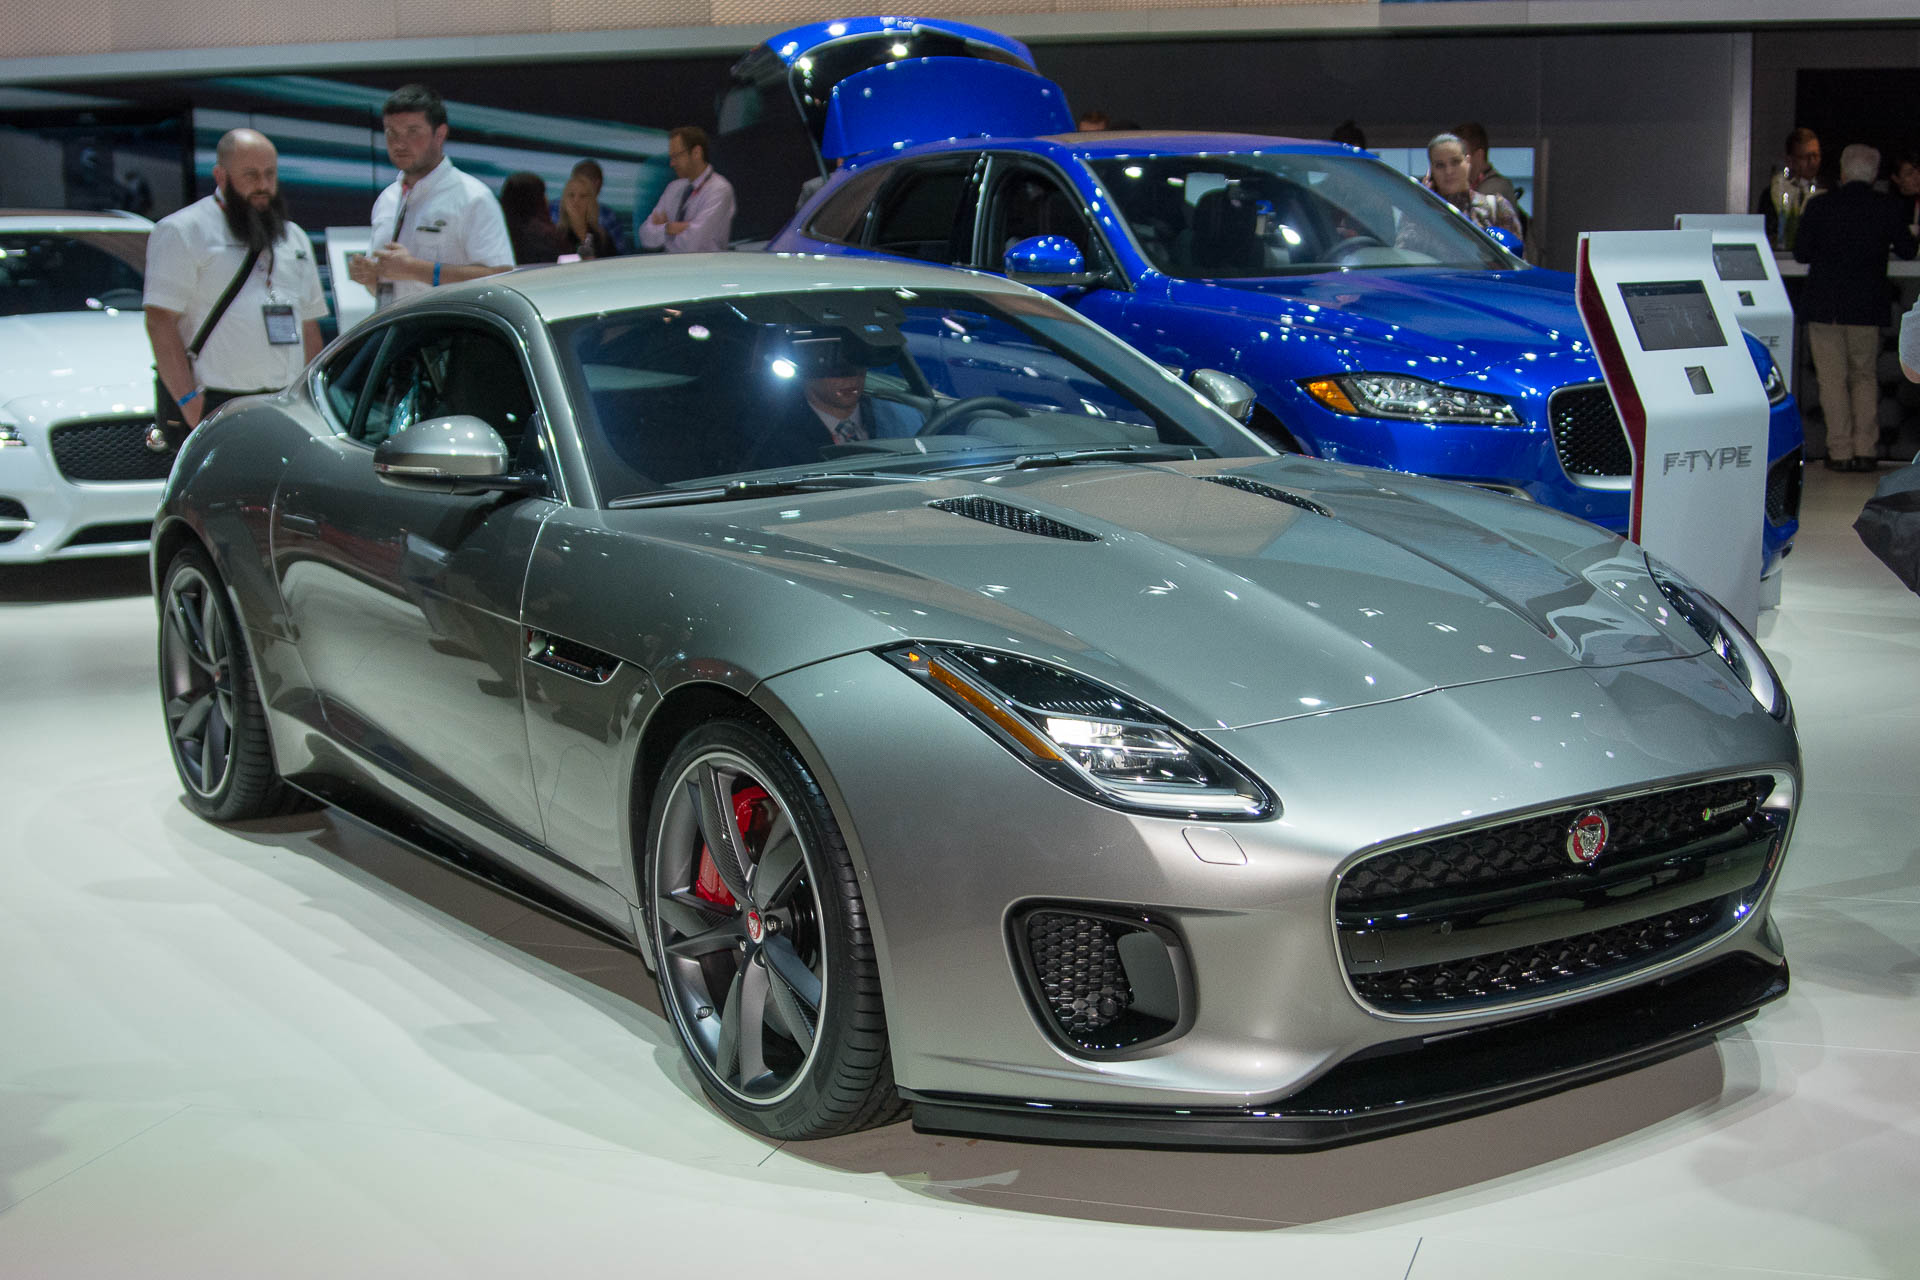 2018 jaguar f type. beautiful jaguar 2018 jaguar ftype pricing drops to 60895 with addition of 4cylinder  option inside jaguar f type